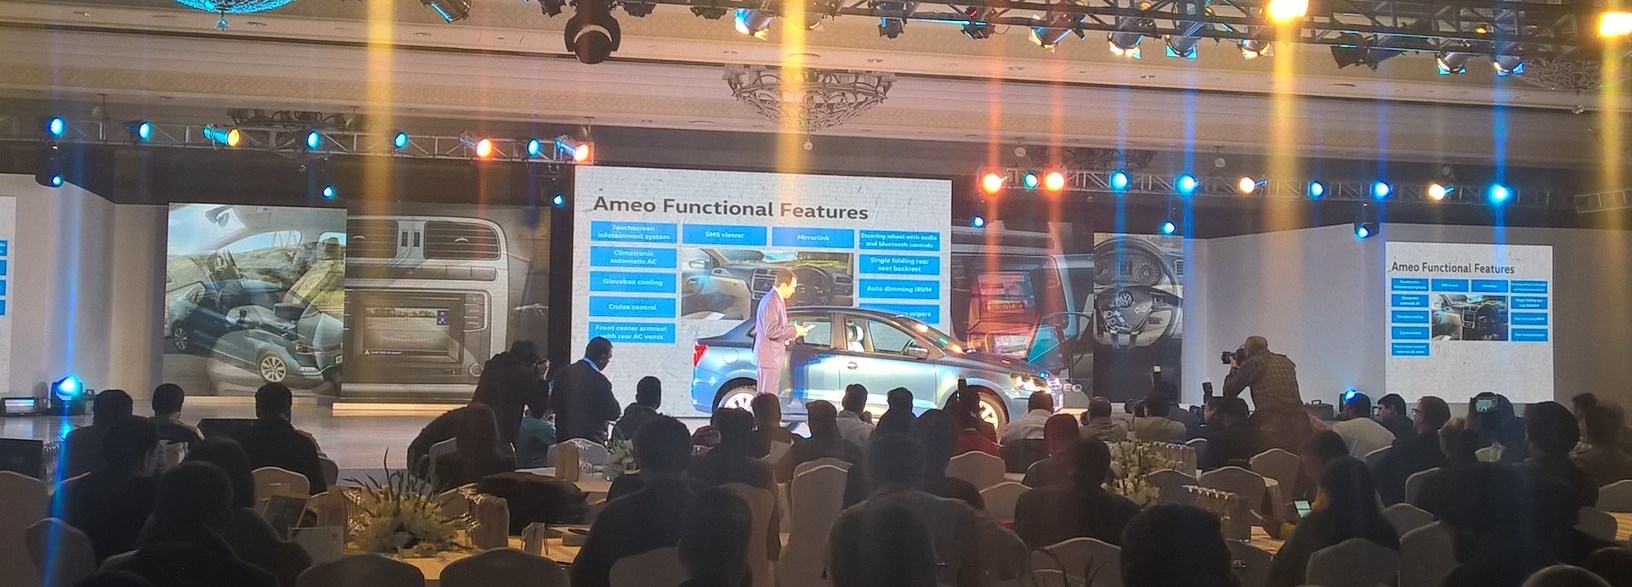 Some car makers have decided to focus their efforts on smaller events to show their cars. It was the case of Volkswagen in India, where JATO attended the Volkswagen Ameo presentation.